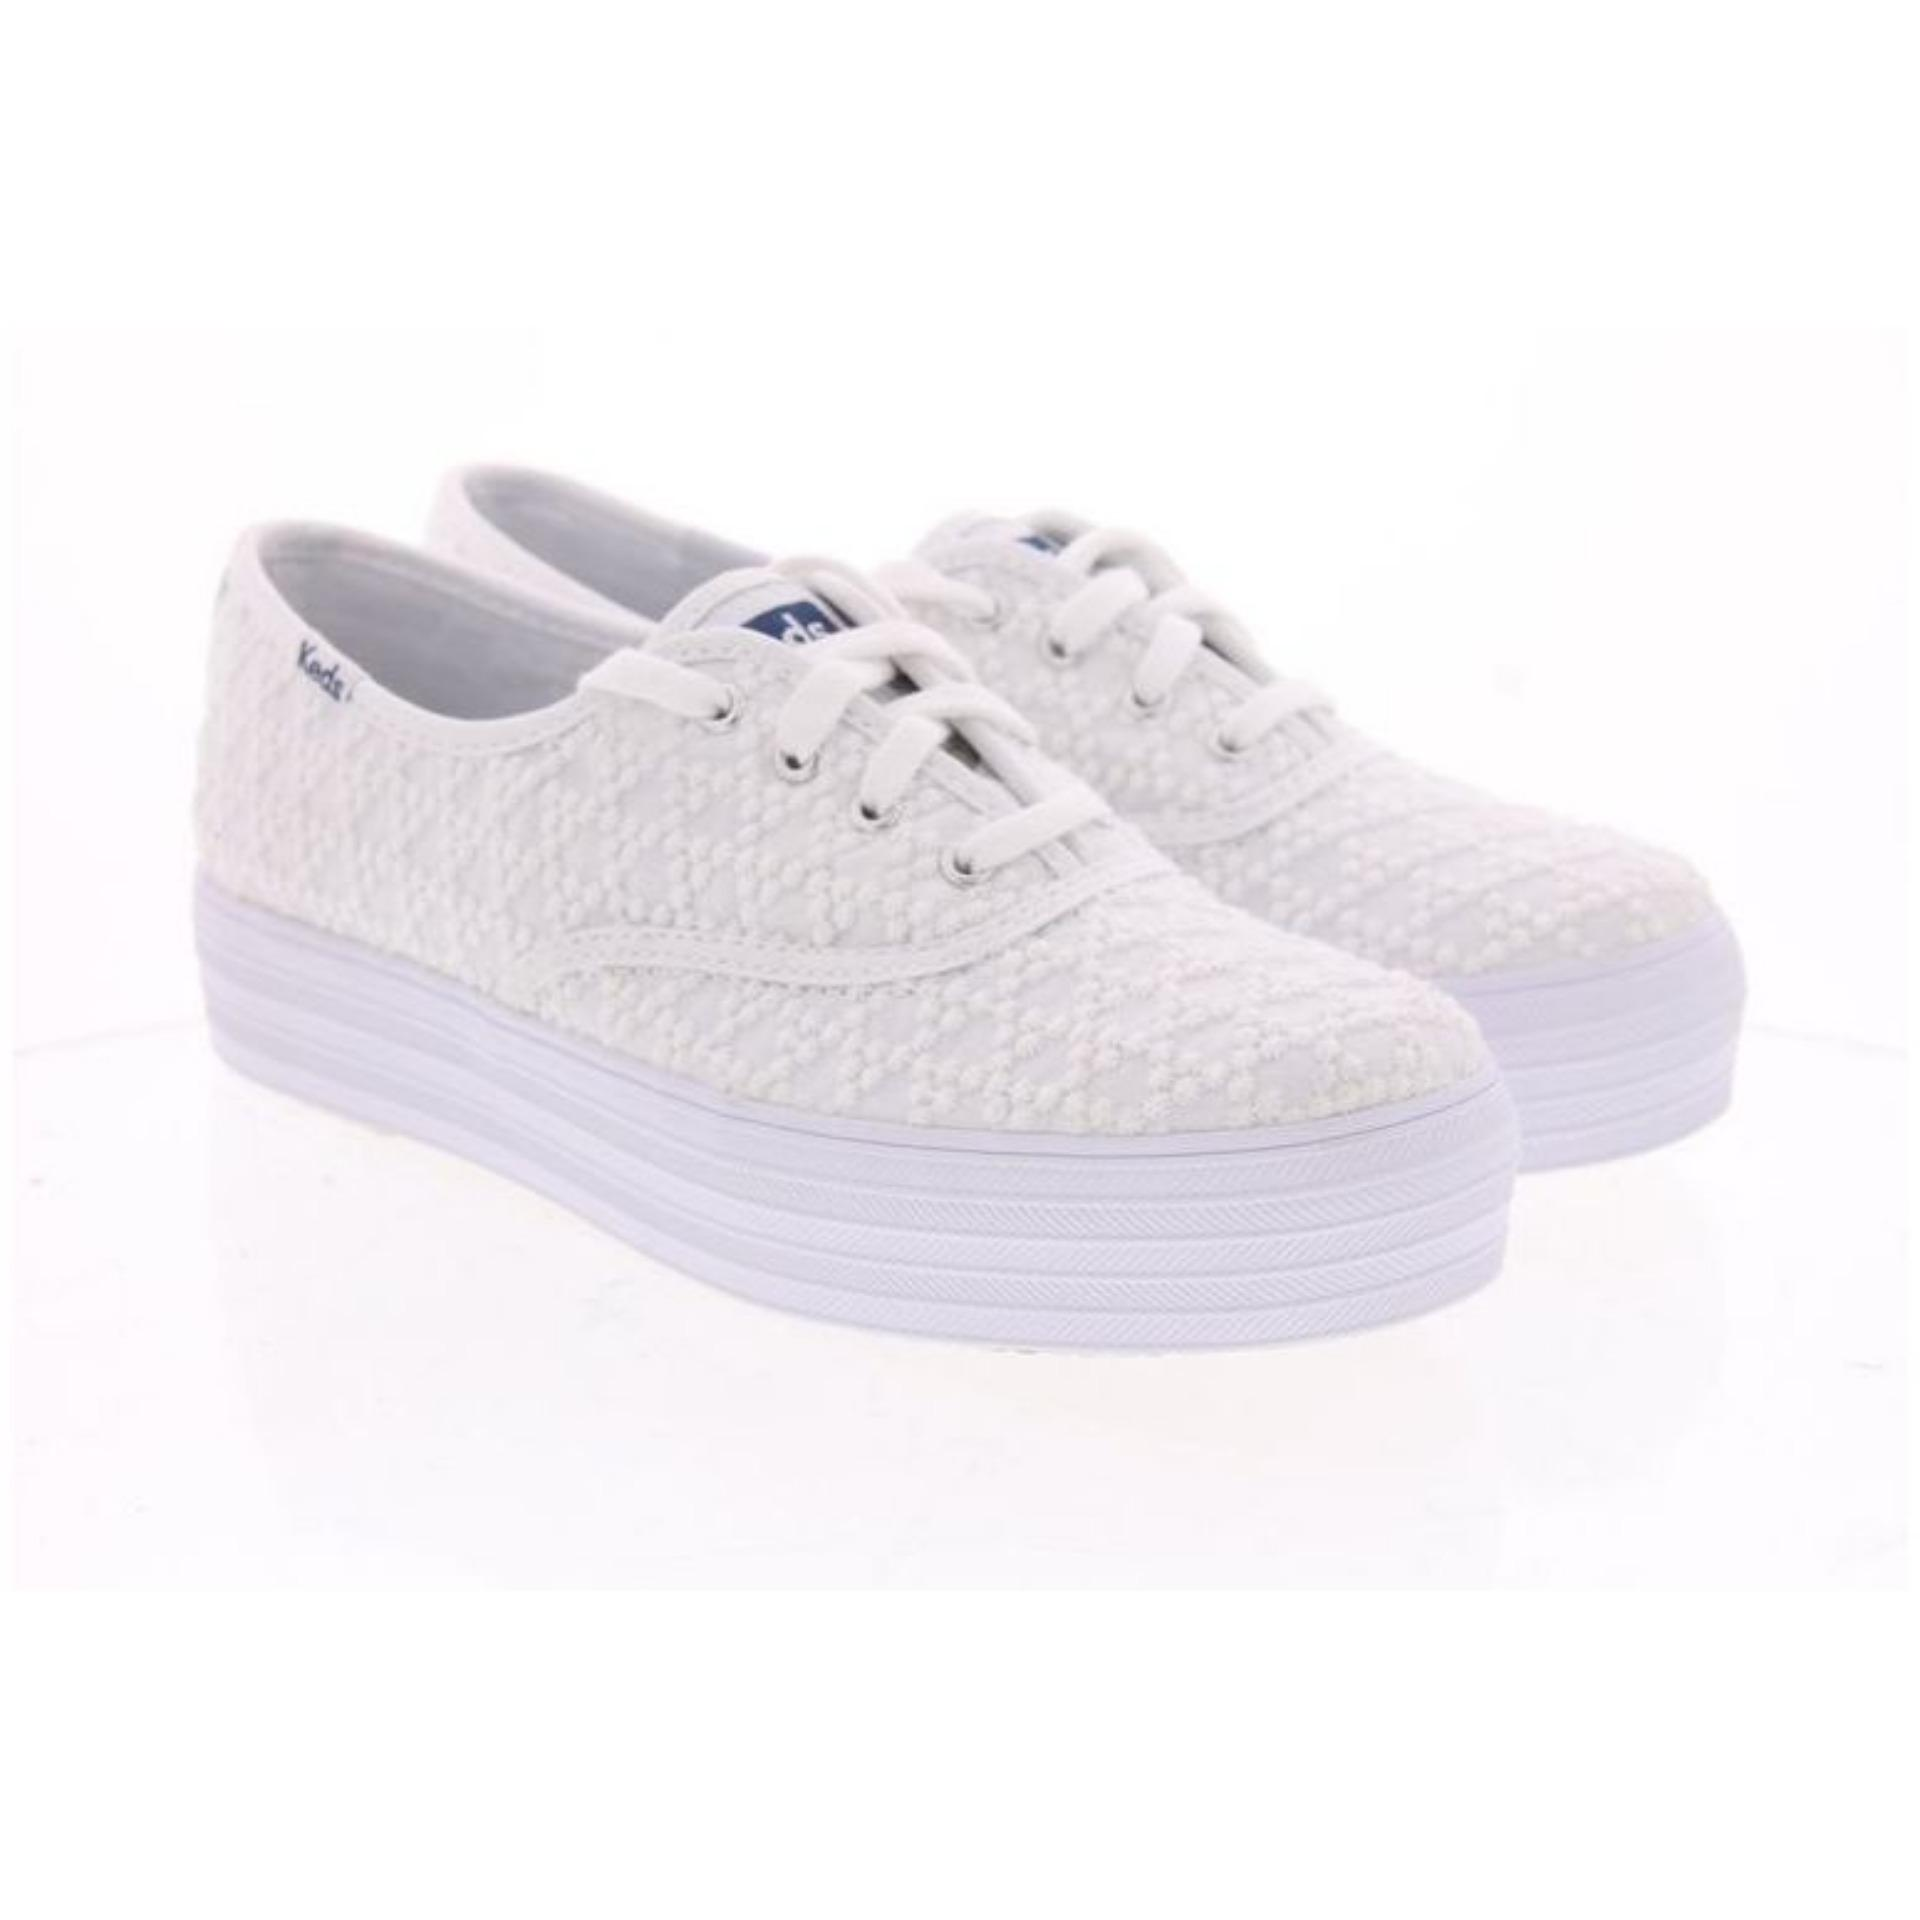 Keds Triple Embroidered Triangle Sneakers Wf58032 Discount Code